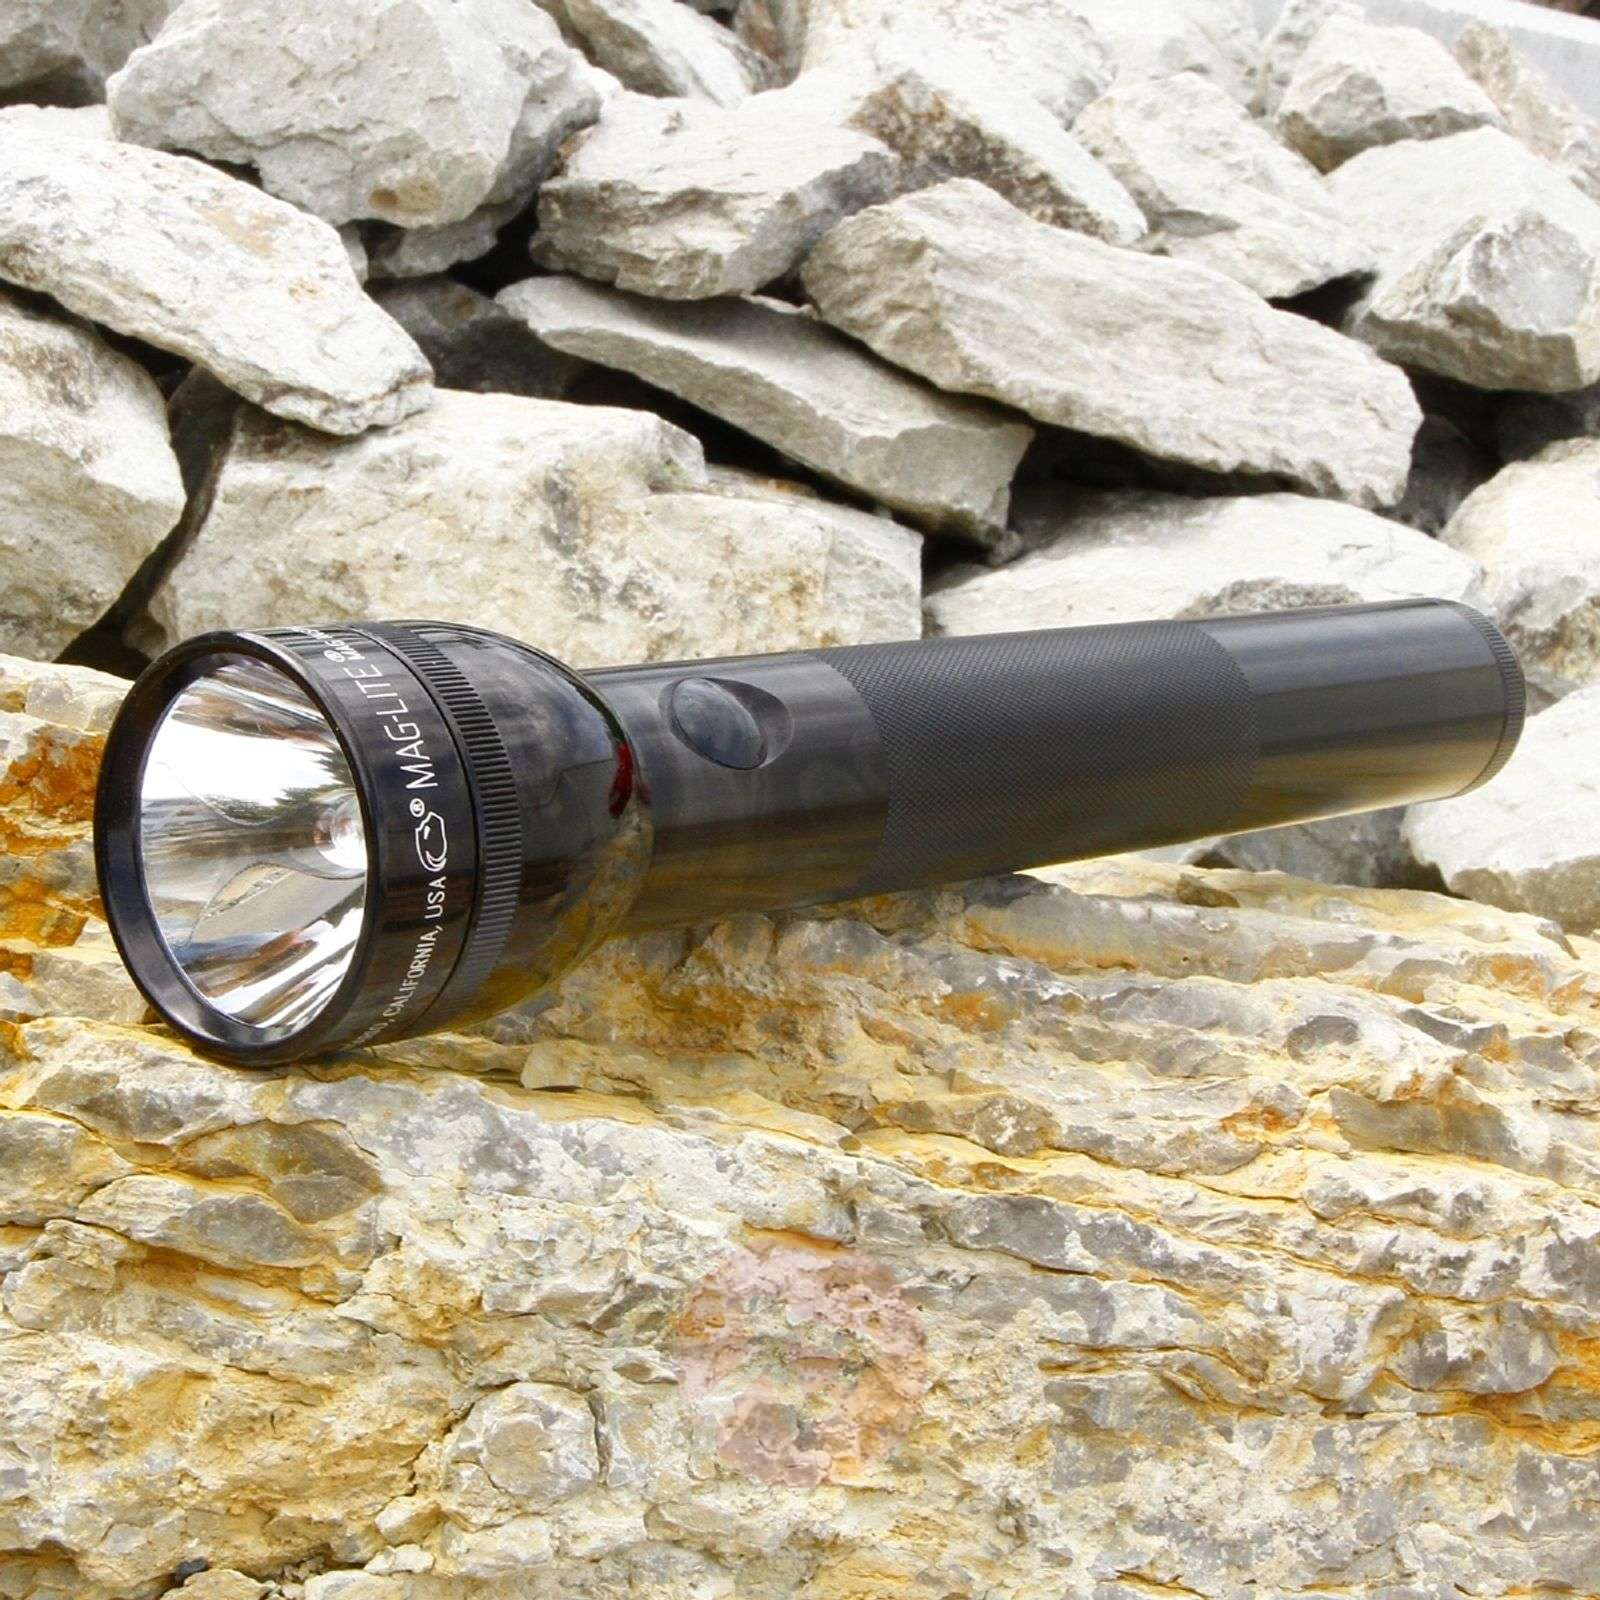 Black torch 3 D-Cell from Maglite-6535014-01